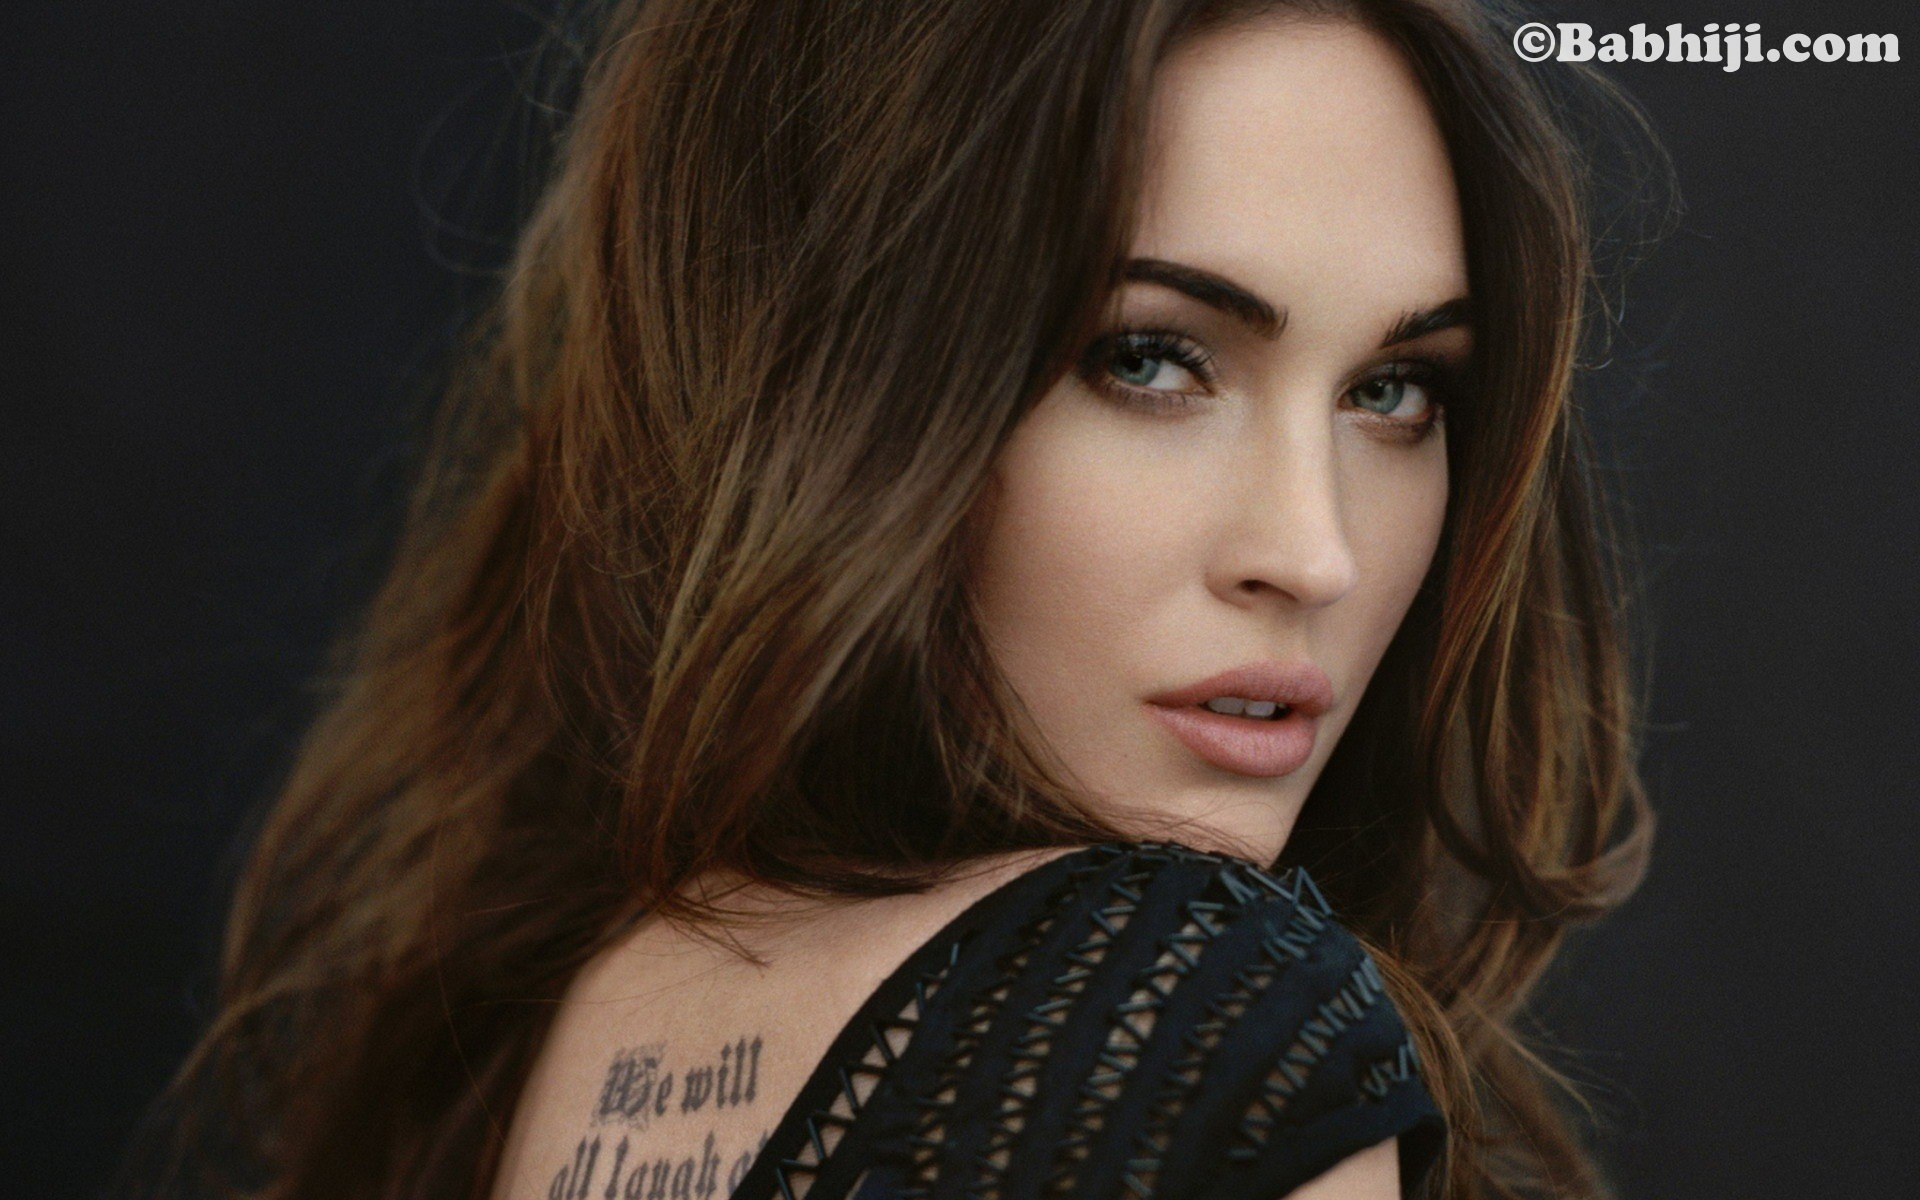 Megan Fox, Megan Fox Wallpaper, Megan Fox Photo, Megan Fox Images